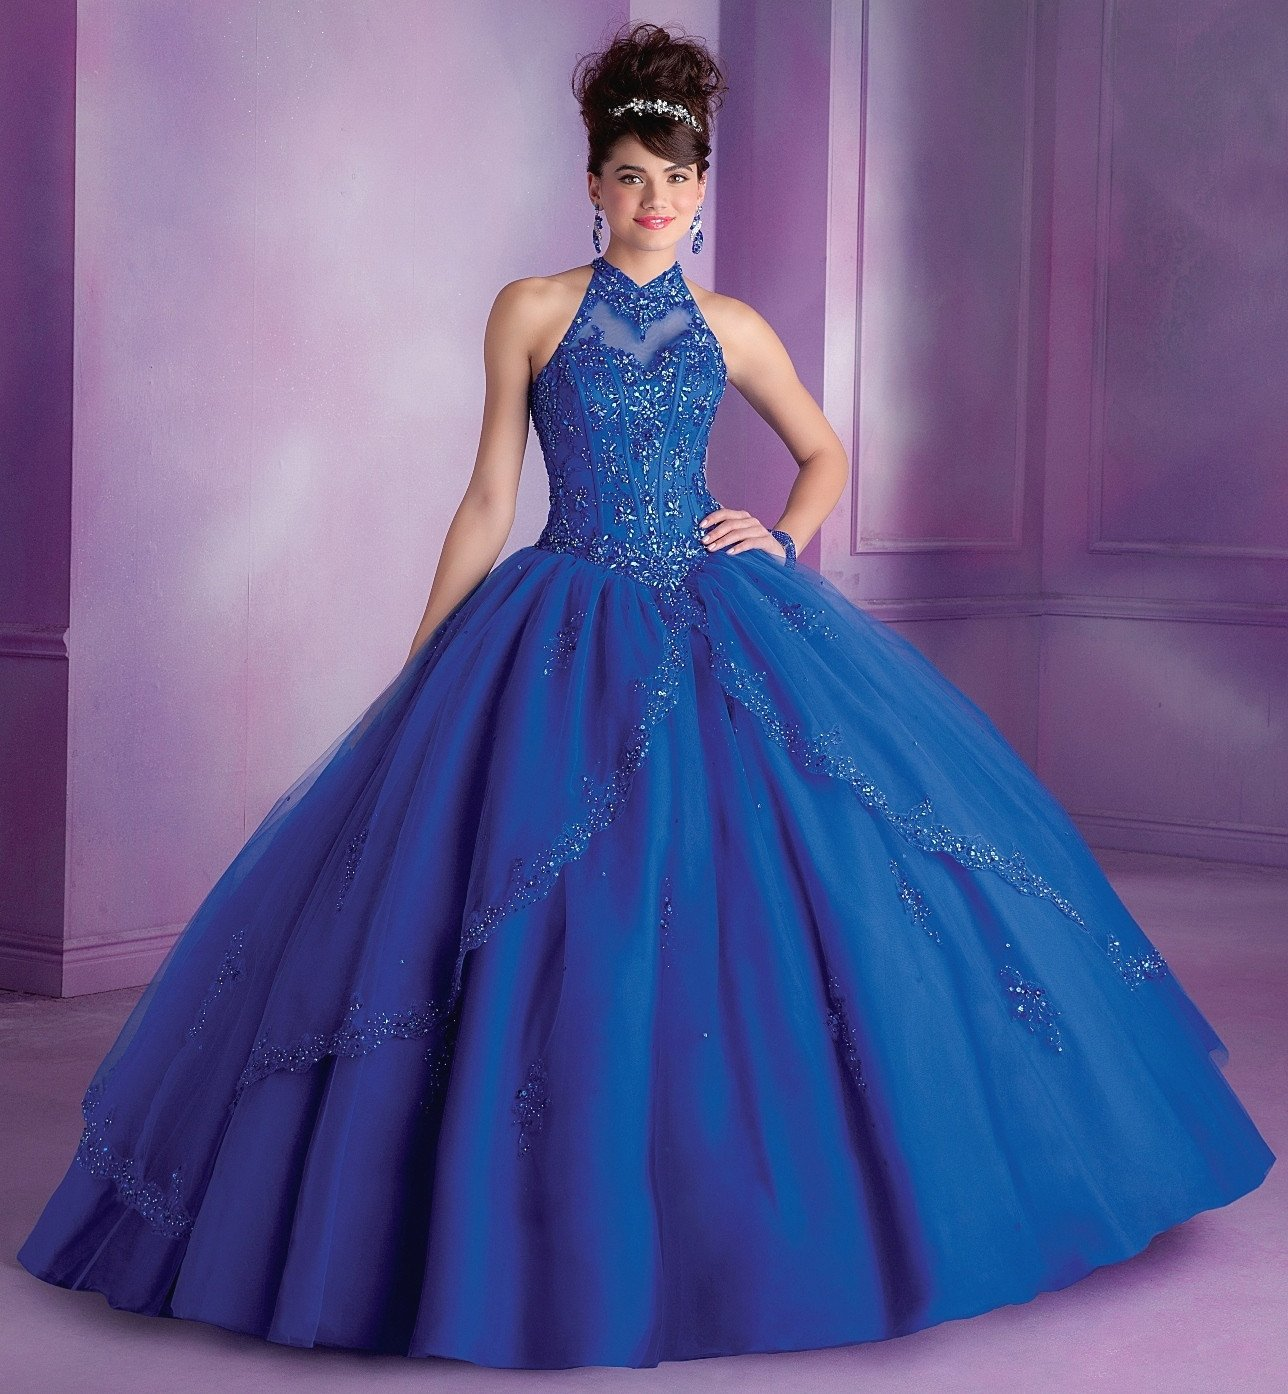 Illusion Halter Quinceanera Dress By Mori Lee Vizcaya